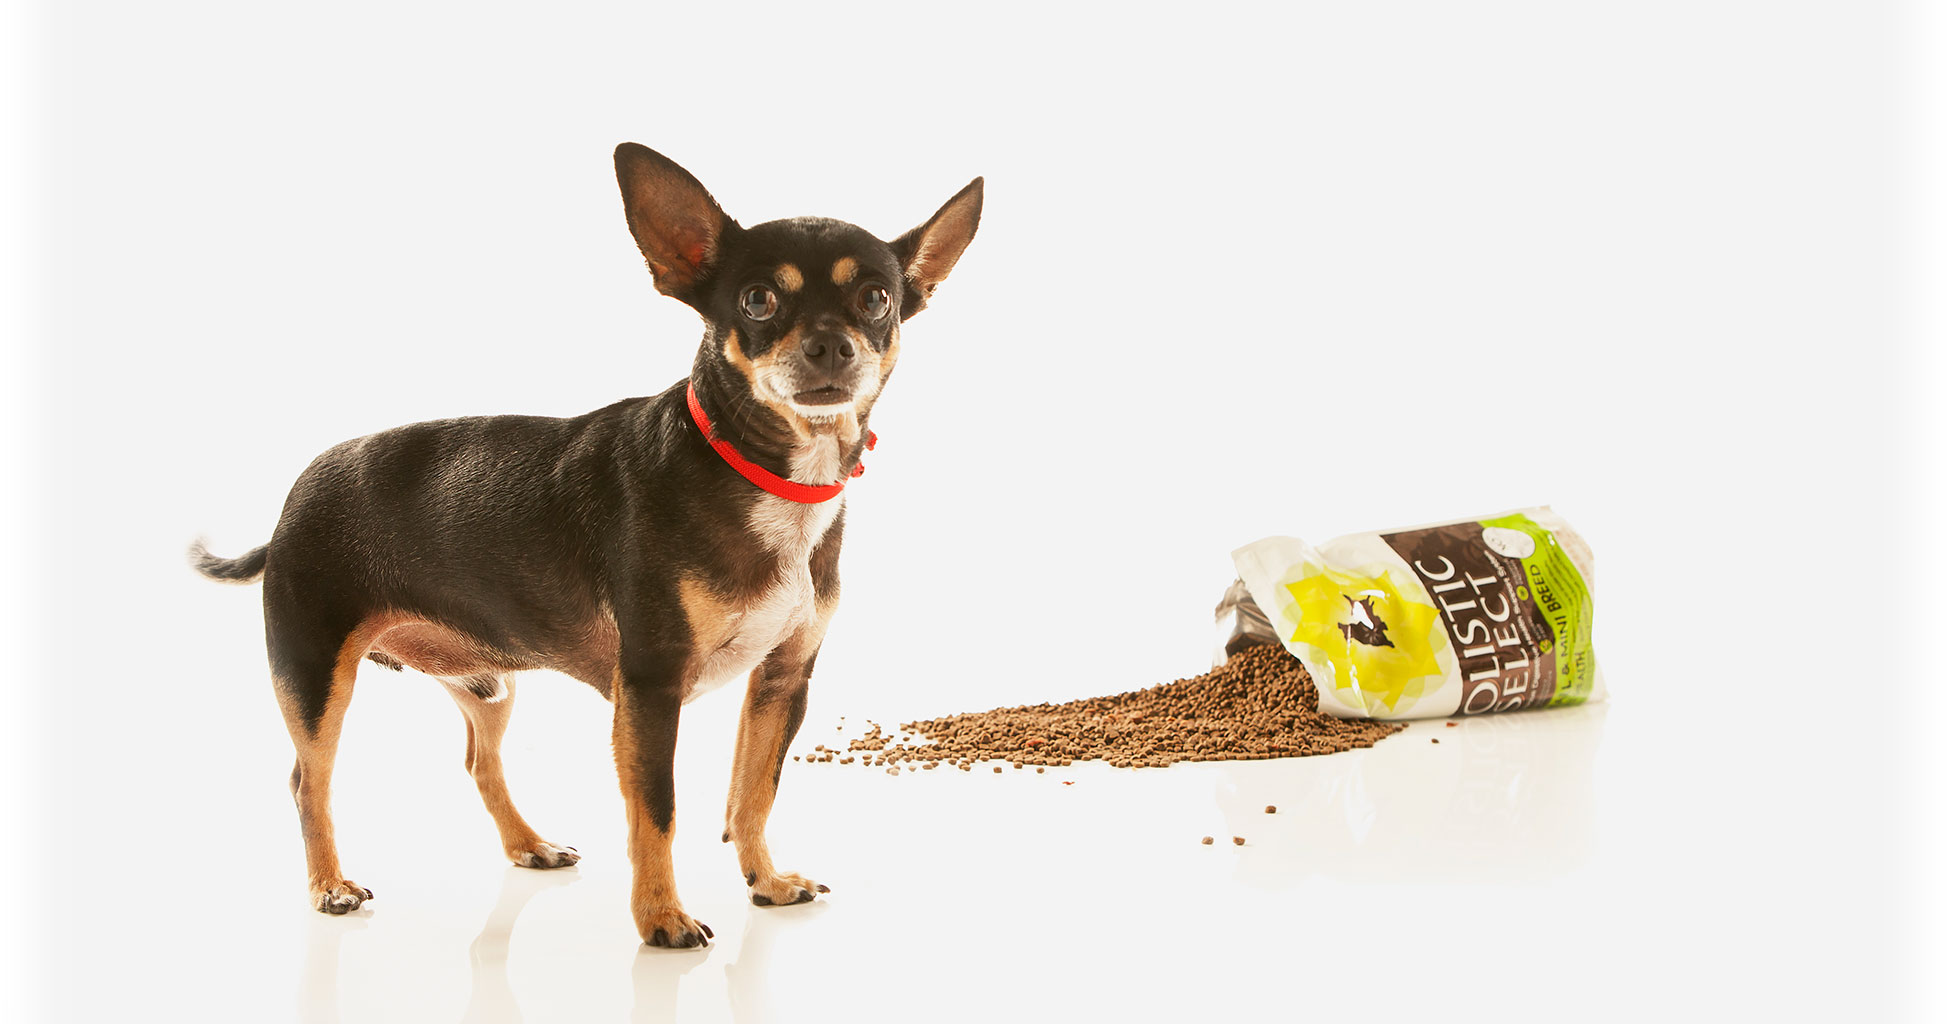 Our services natural pet food and services in albuquerque nm services solutioingenieria Image collections